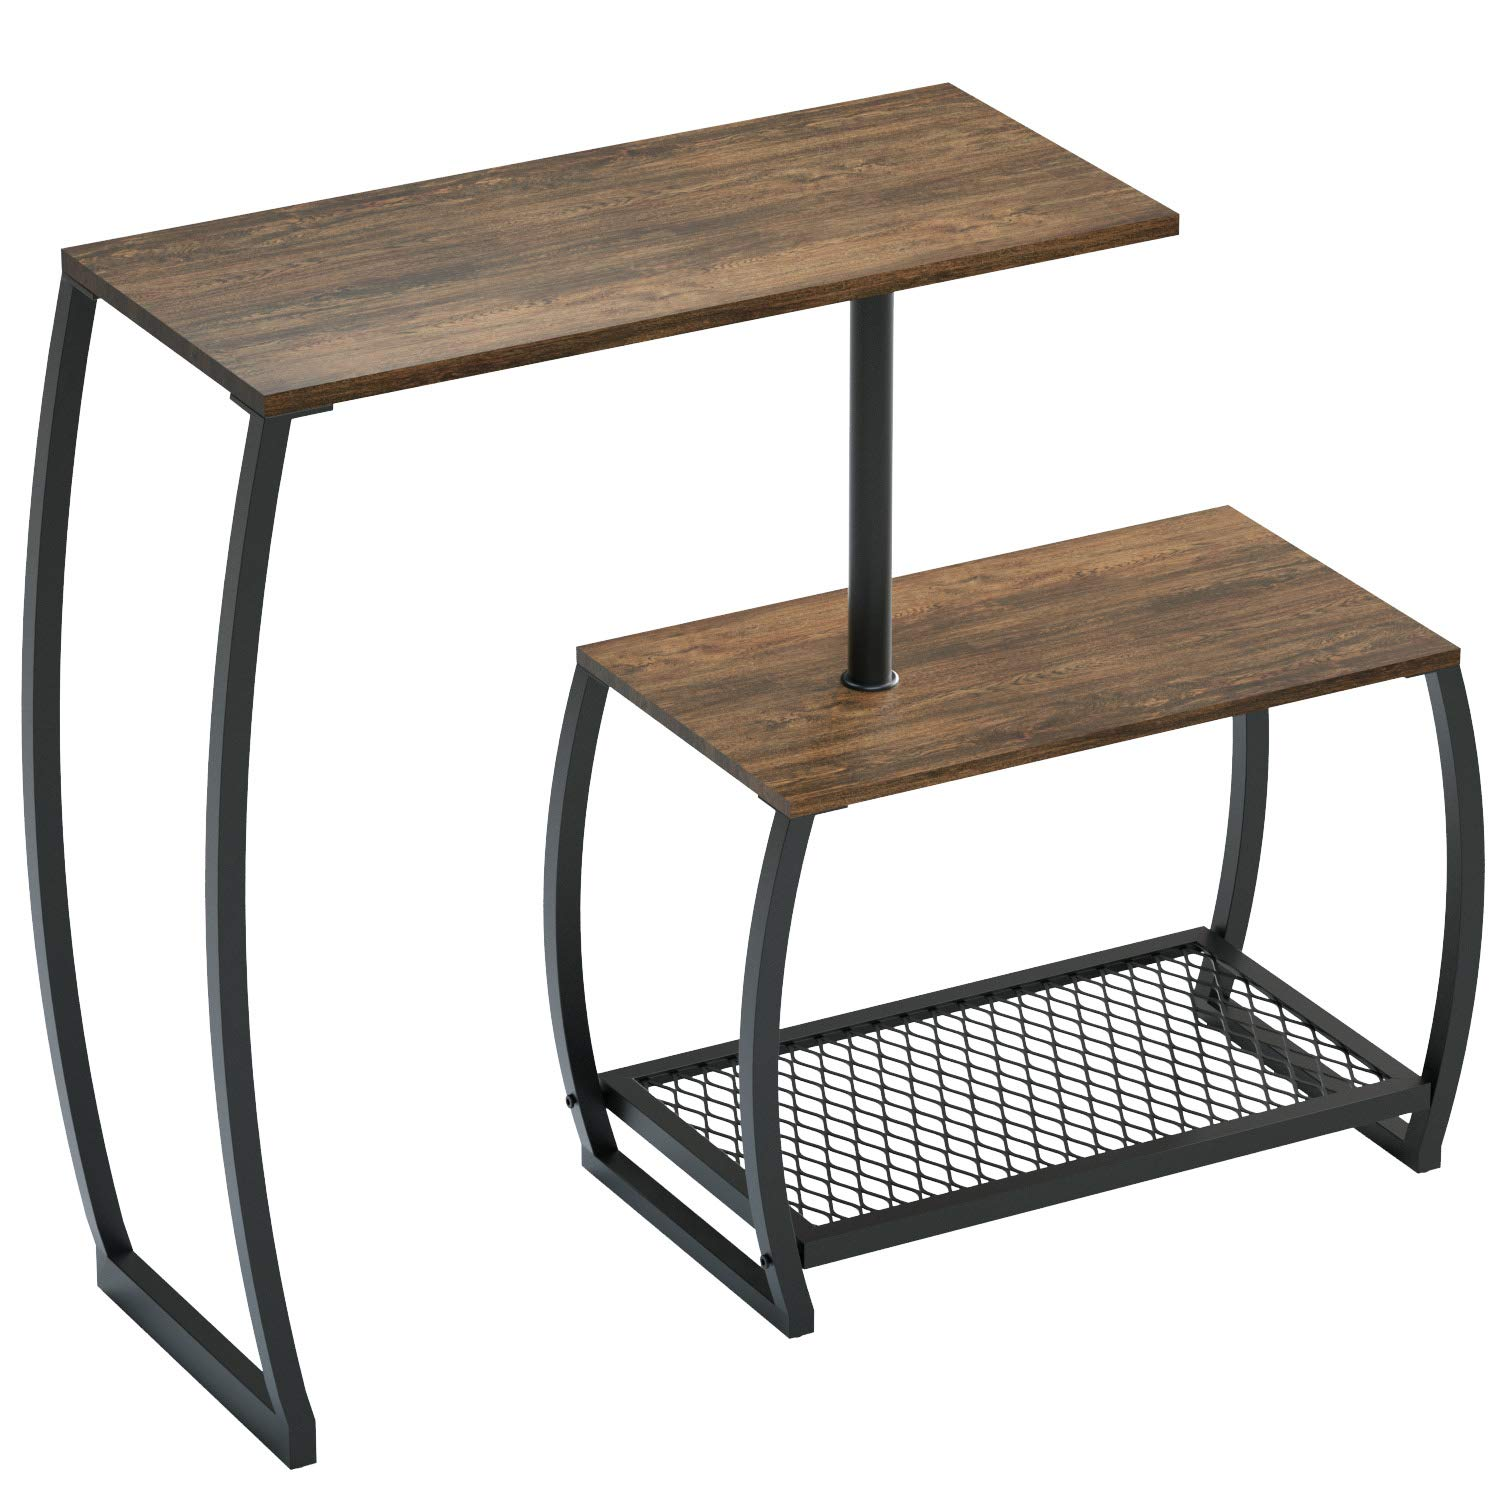 SRIWATANA Sofa Console Table, Vintage 3-Tier Rotatable Storage Table for Entryway Living Room by SRIWATANA